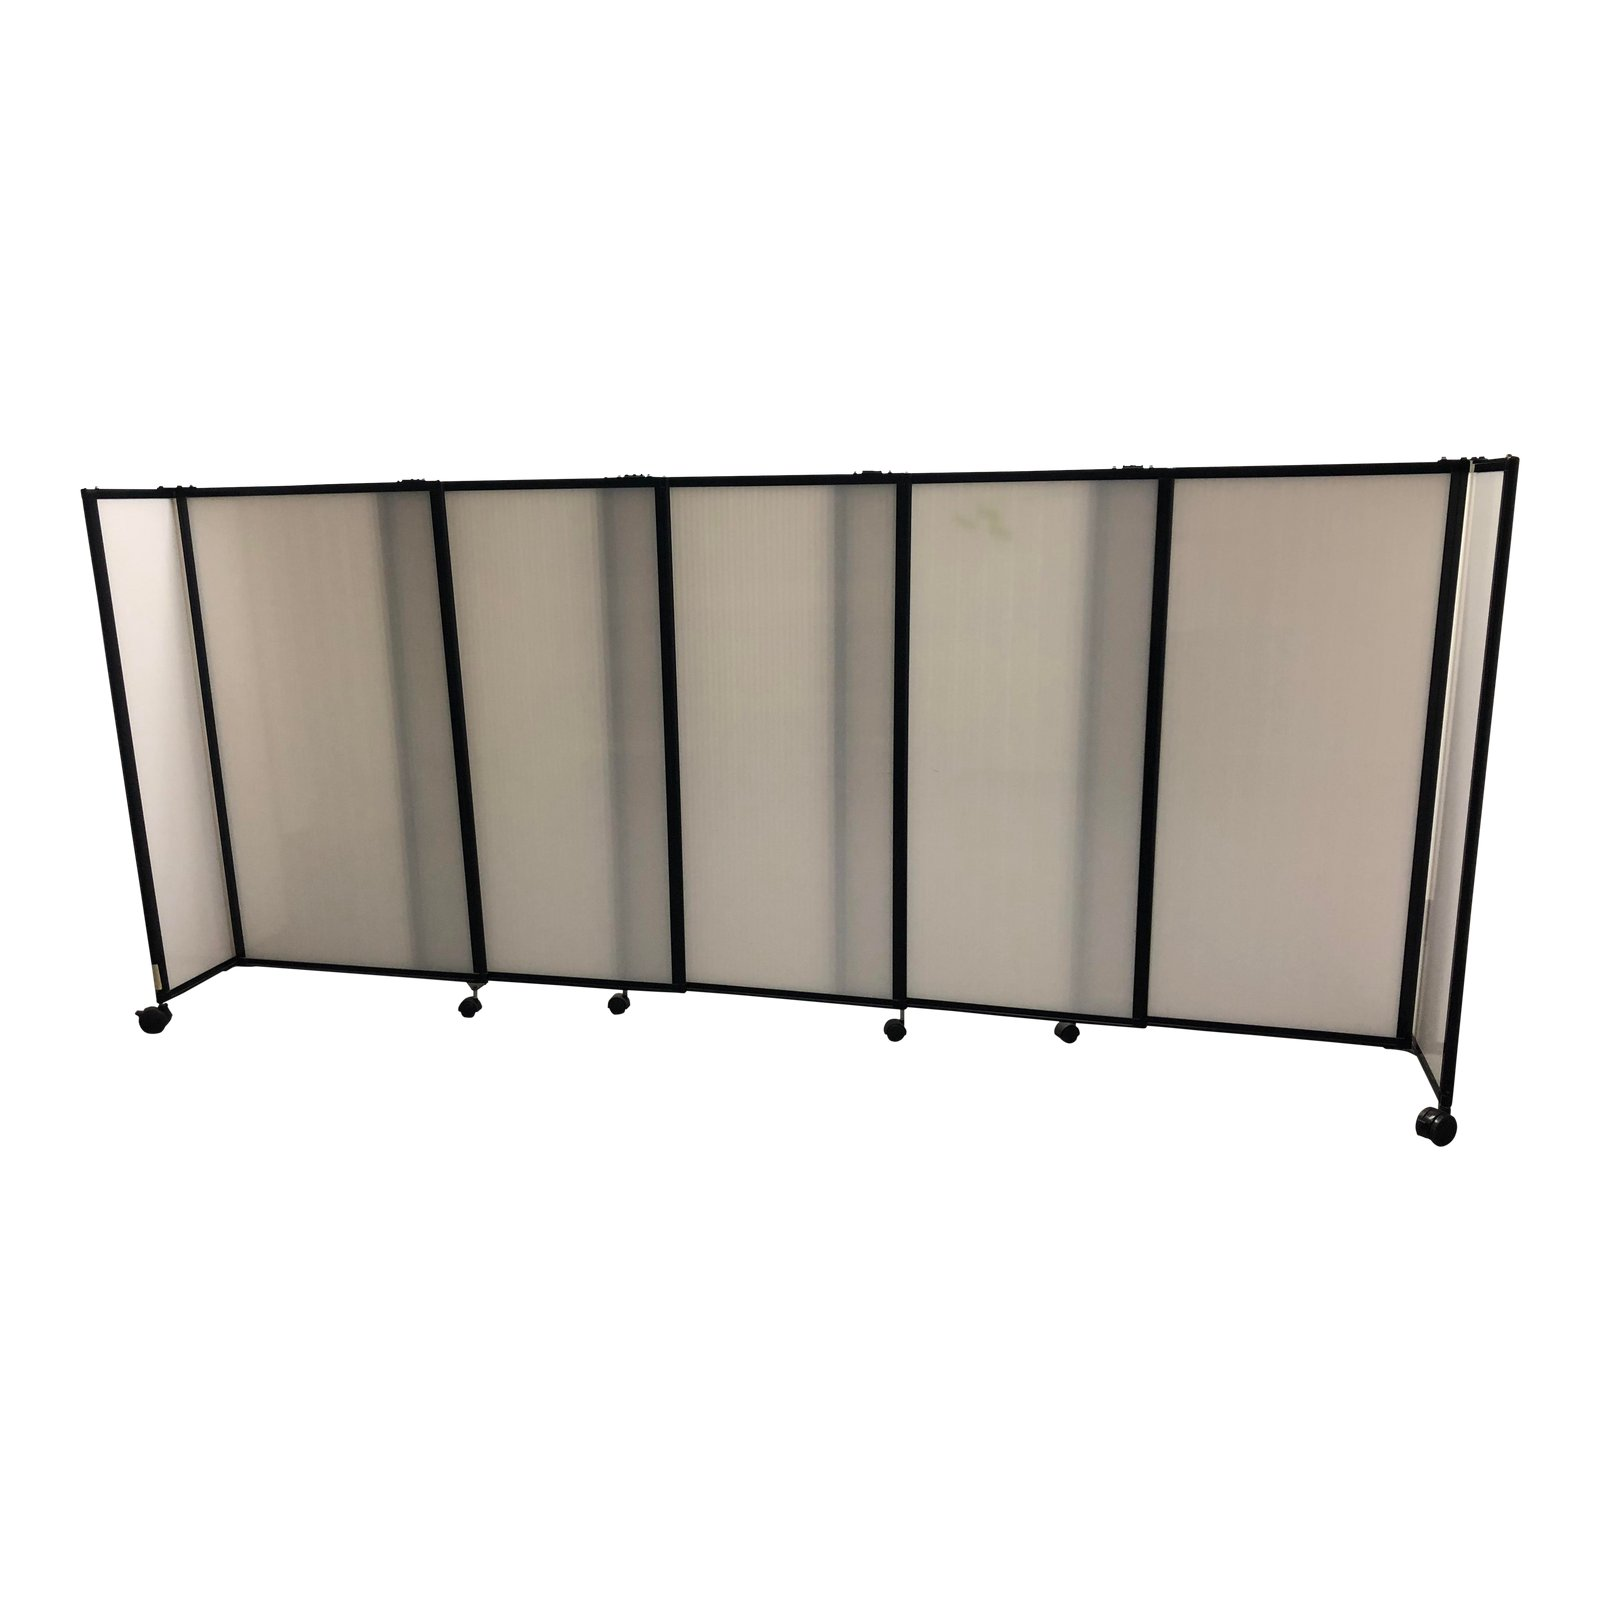 Office devider Clever Custom Expanding 11u2032 Office Divider Design Plus Consignment Gallery Custom Expanding 11 Office Divider Design Plus Gallery